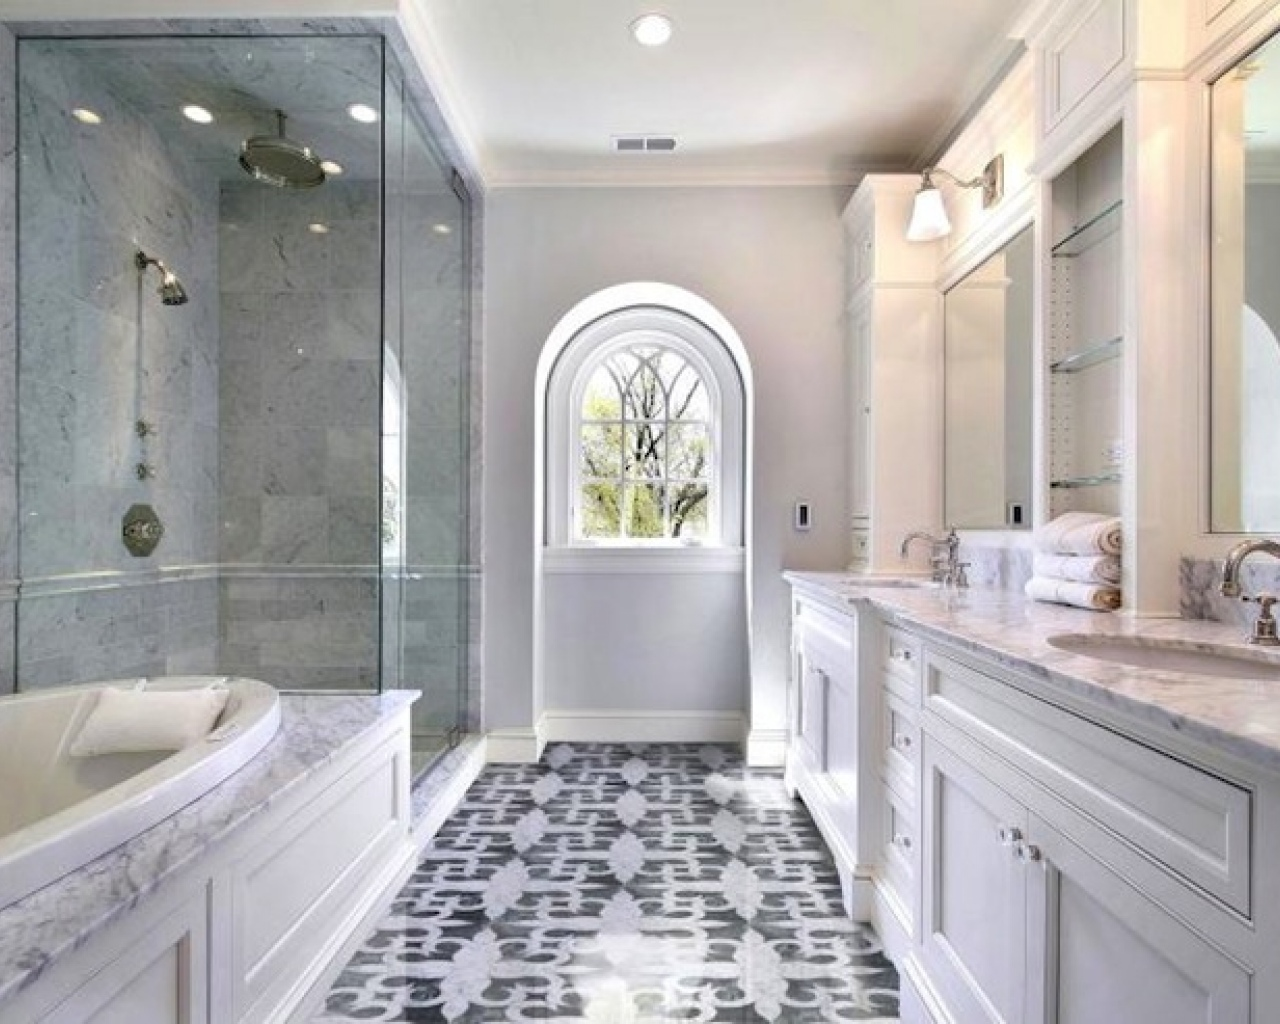 25 amazing italian bathroom tile designs ideas and pictures Bathroom design ideas with marble